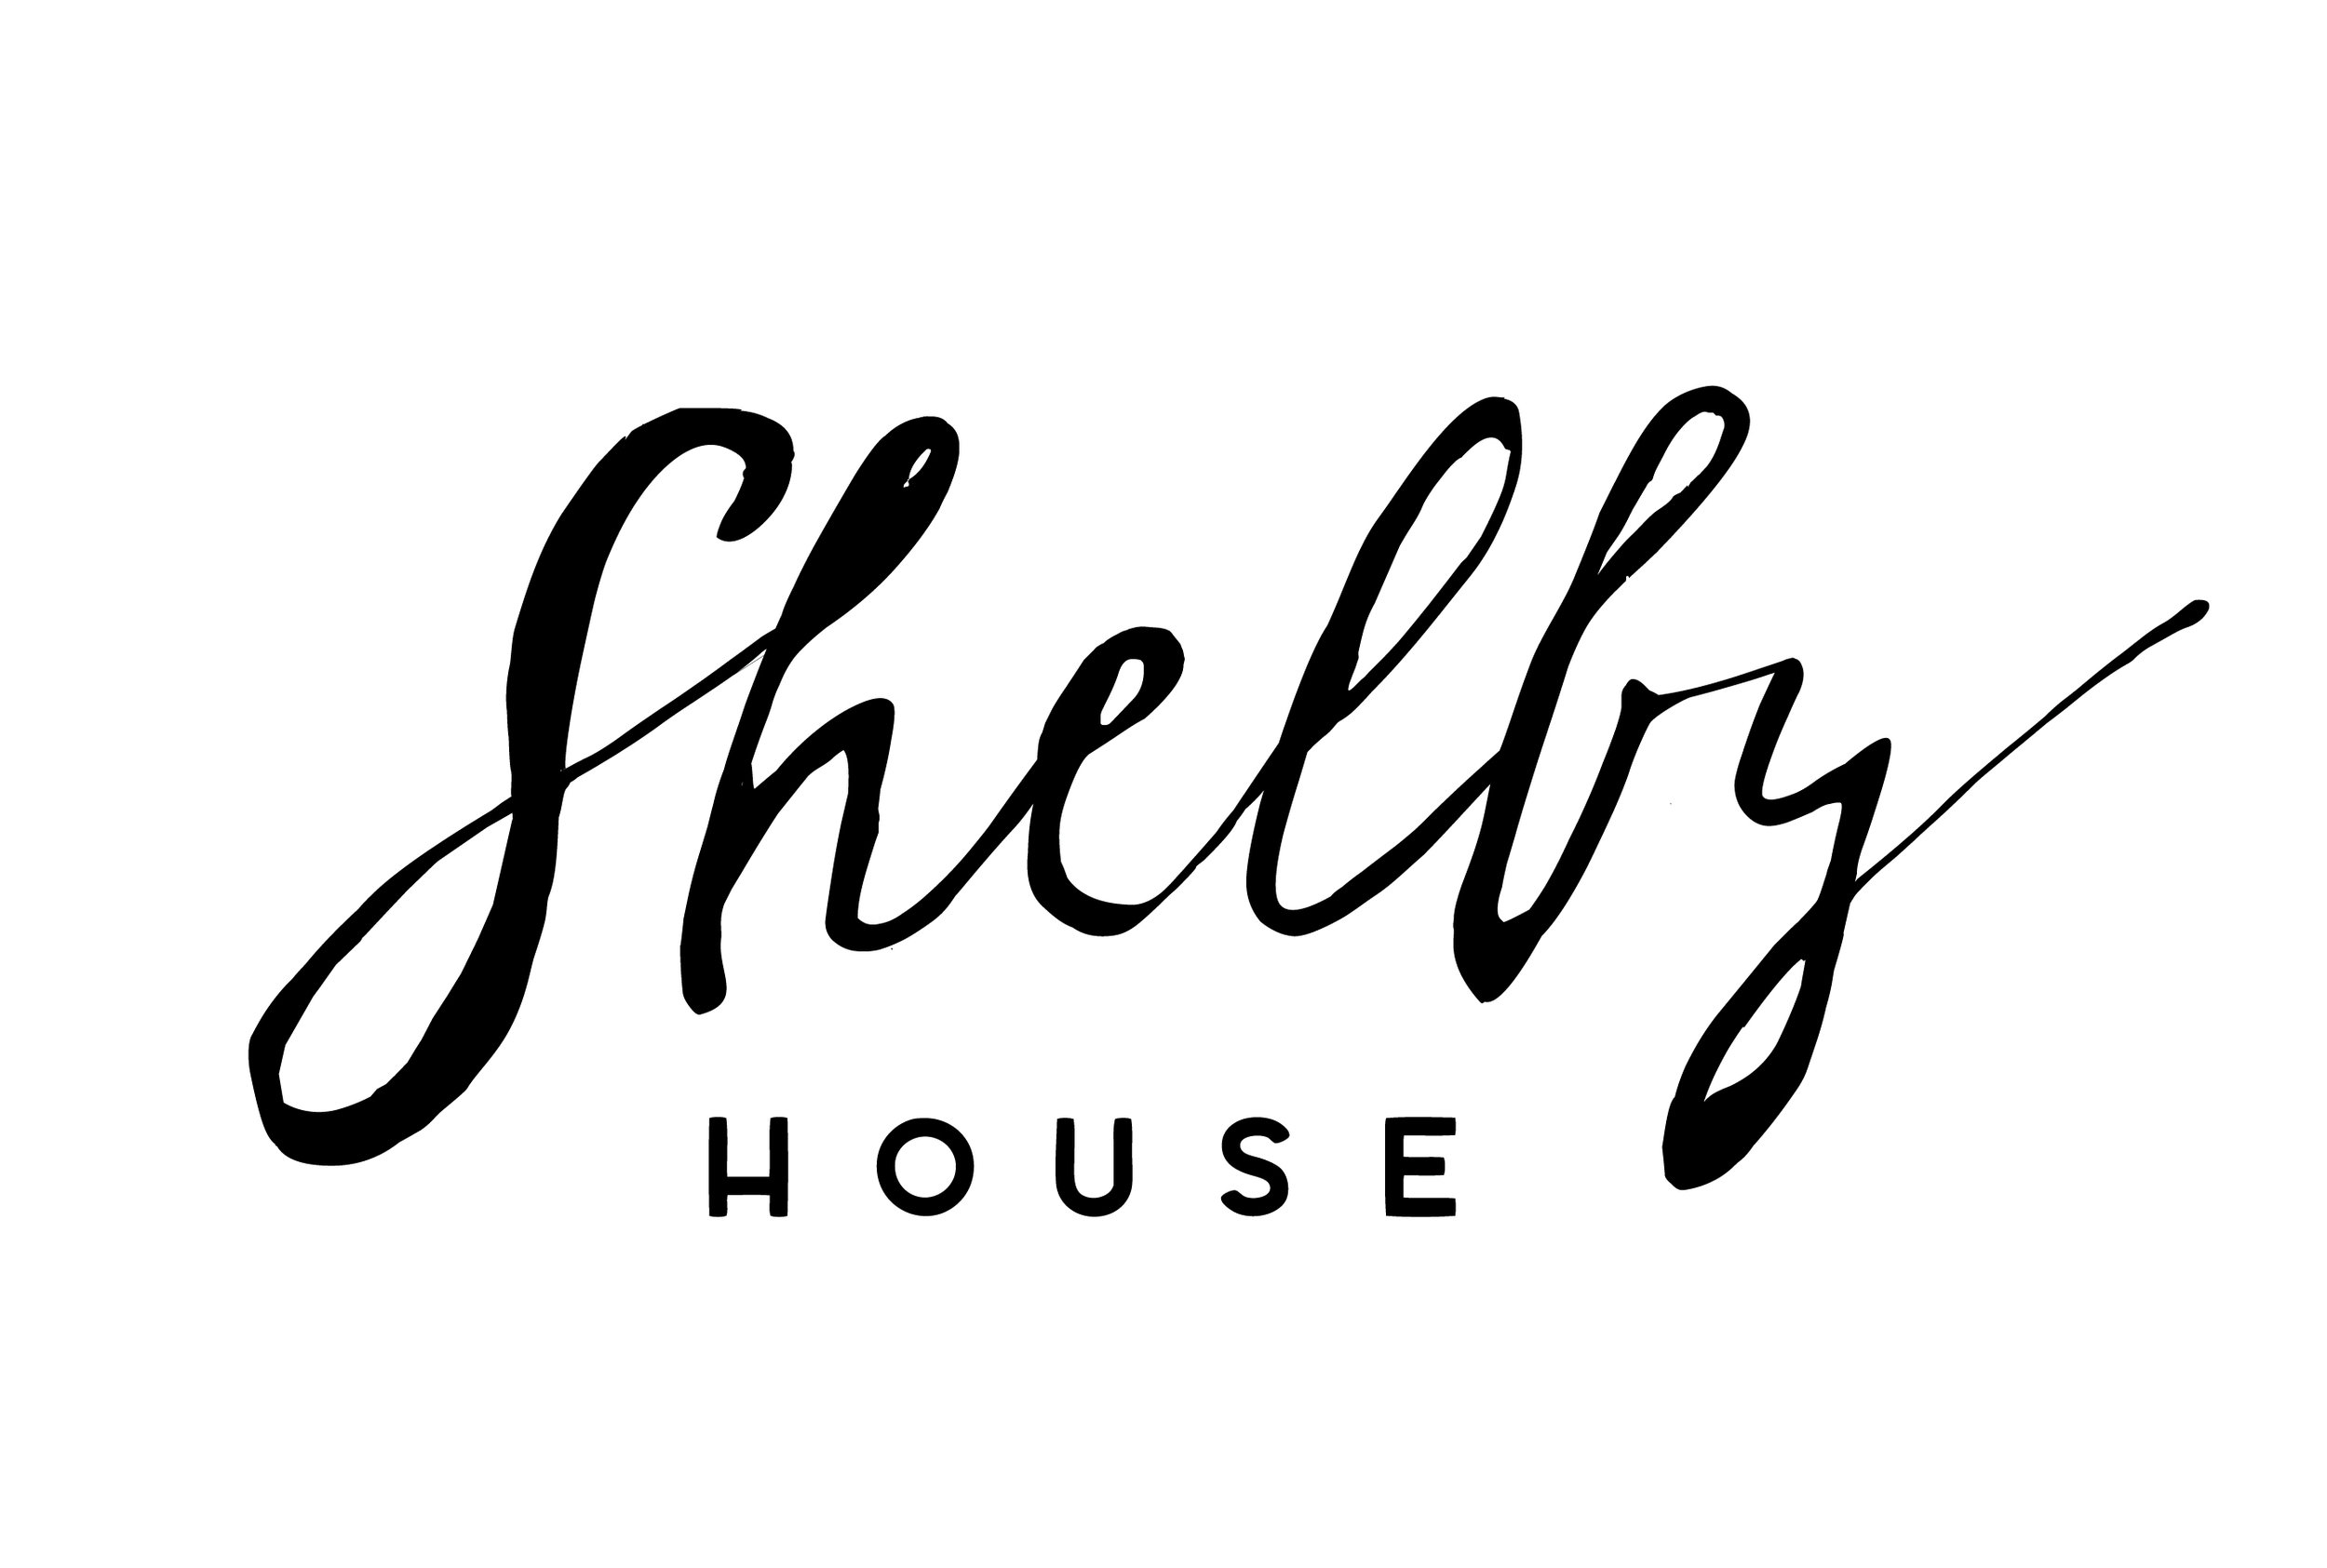 Shelby House & Spirited Goods